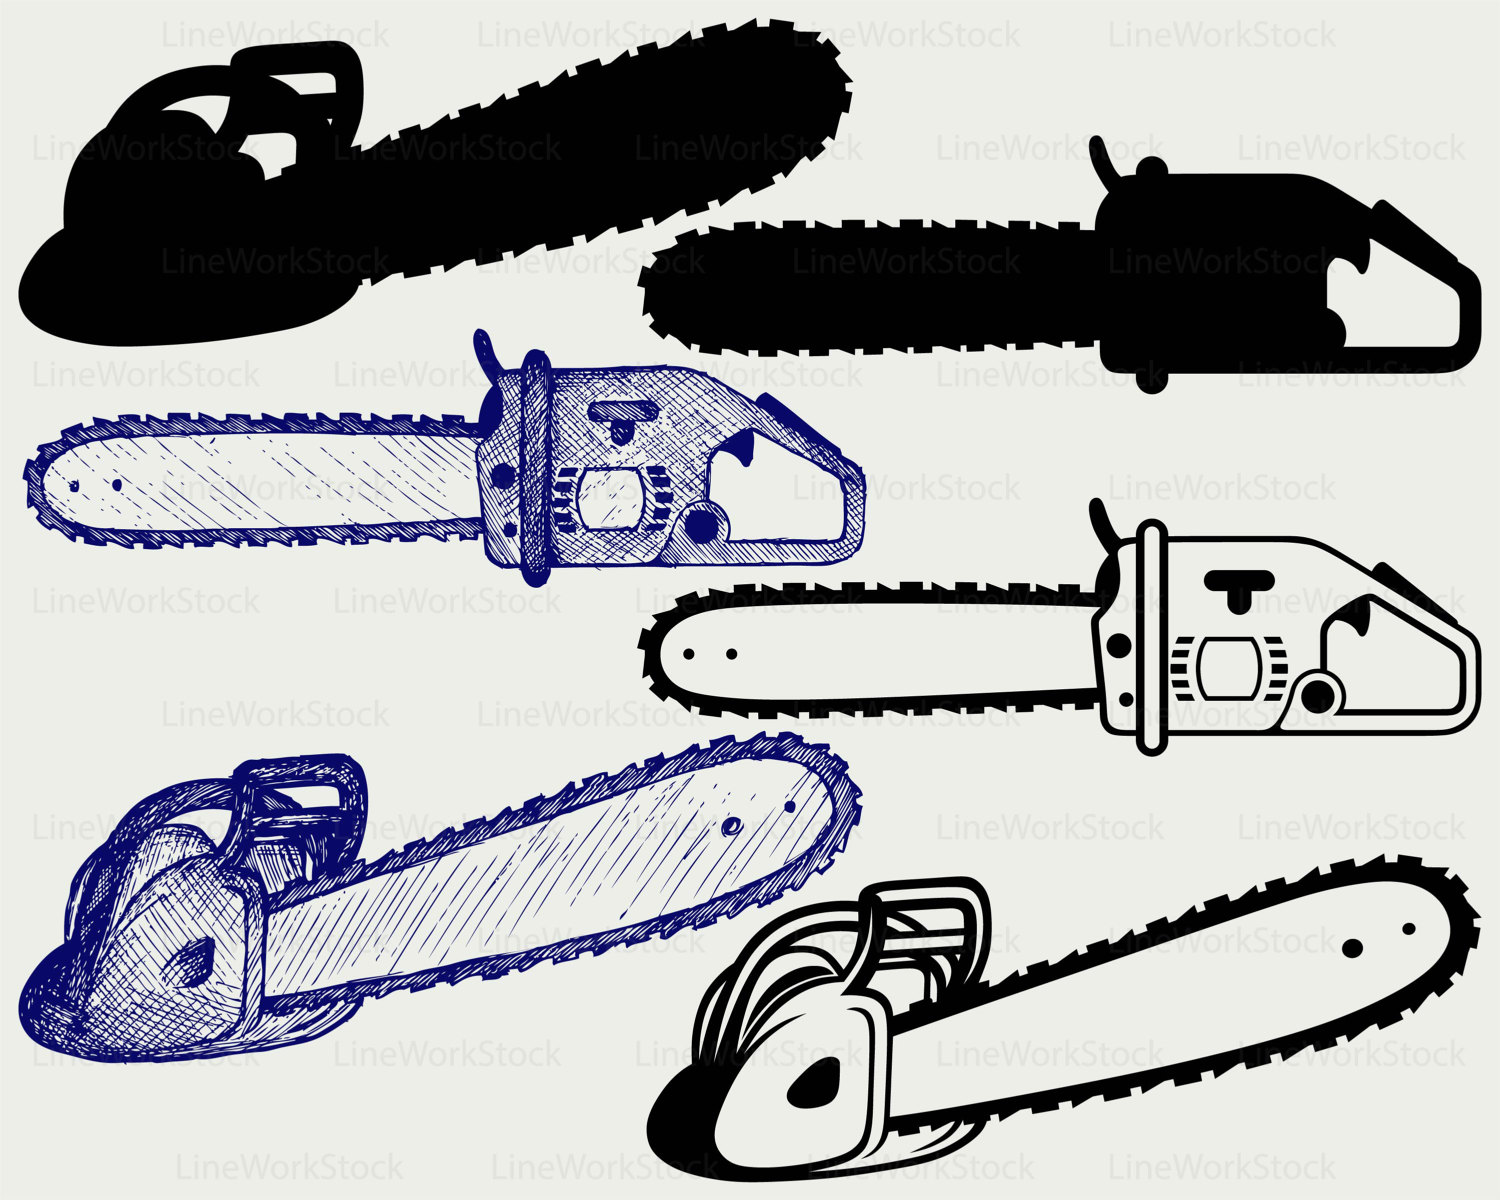 Chainsaw clipart silhouette A clipart  svg is